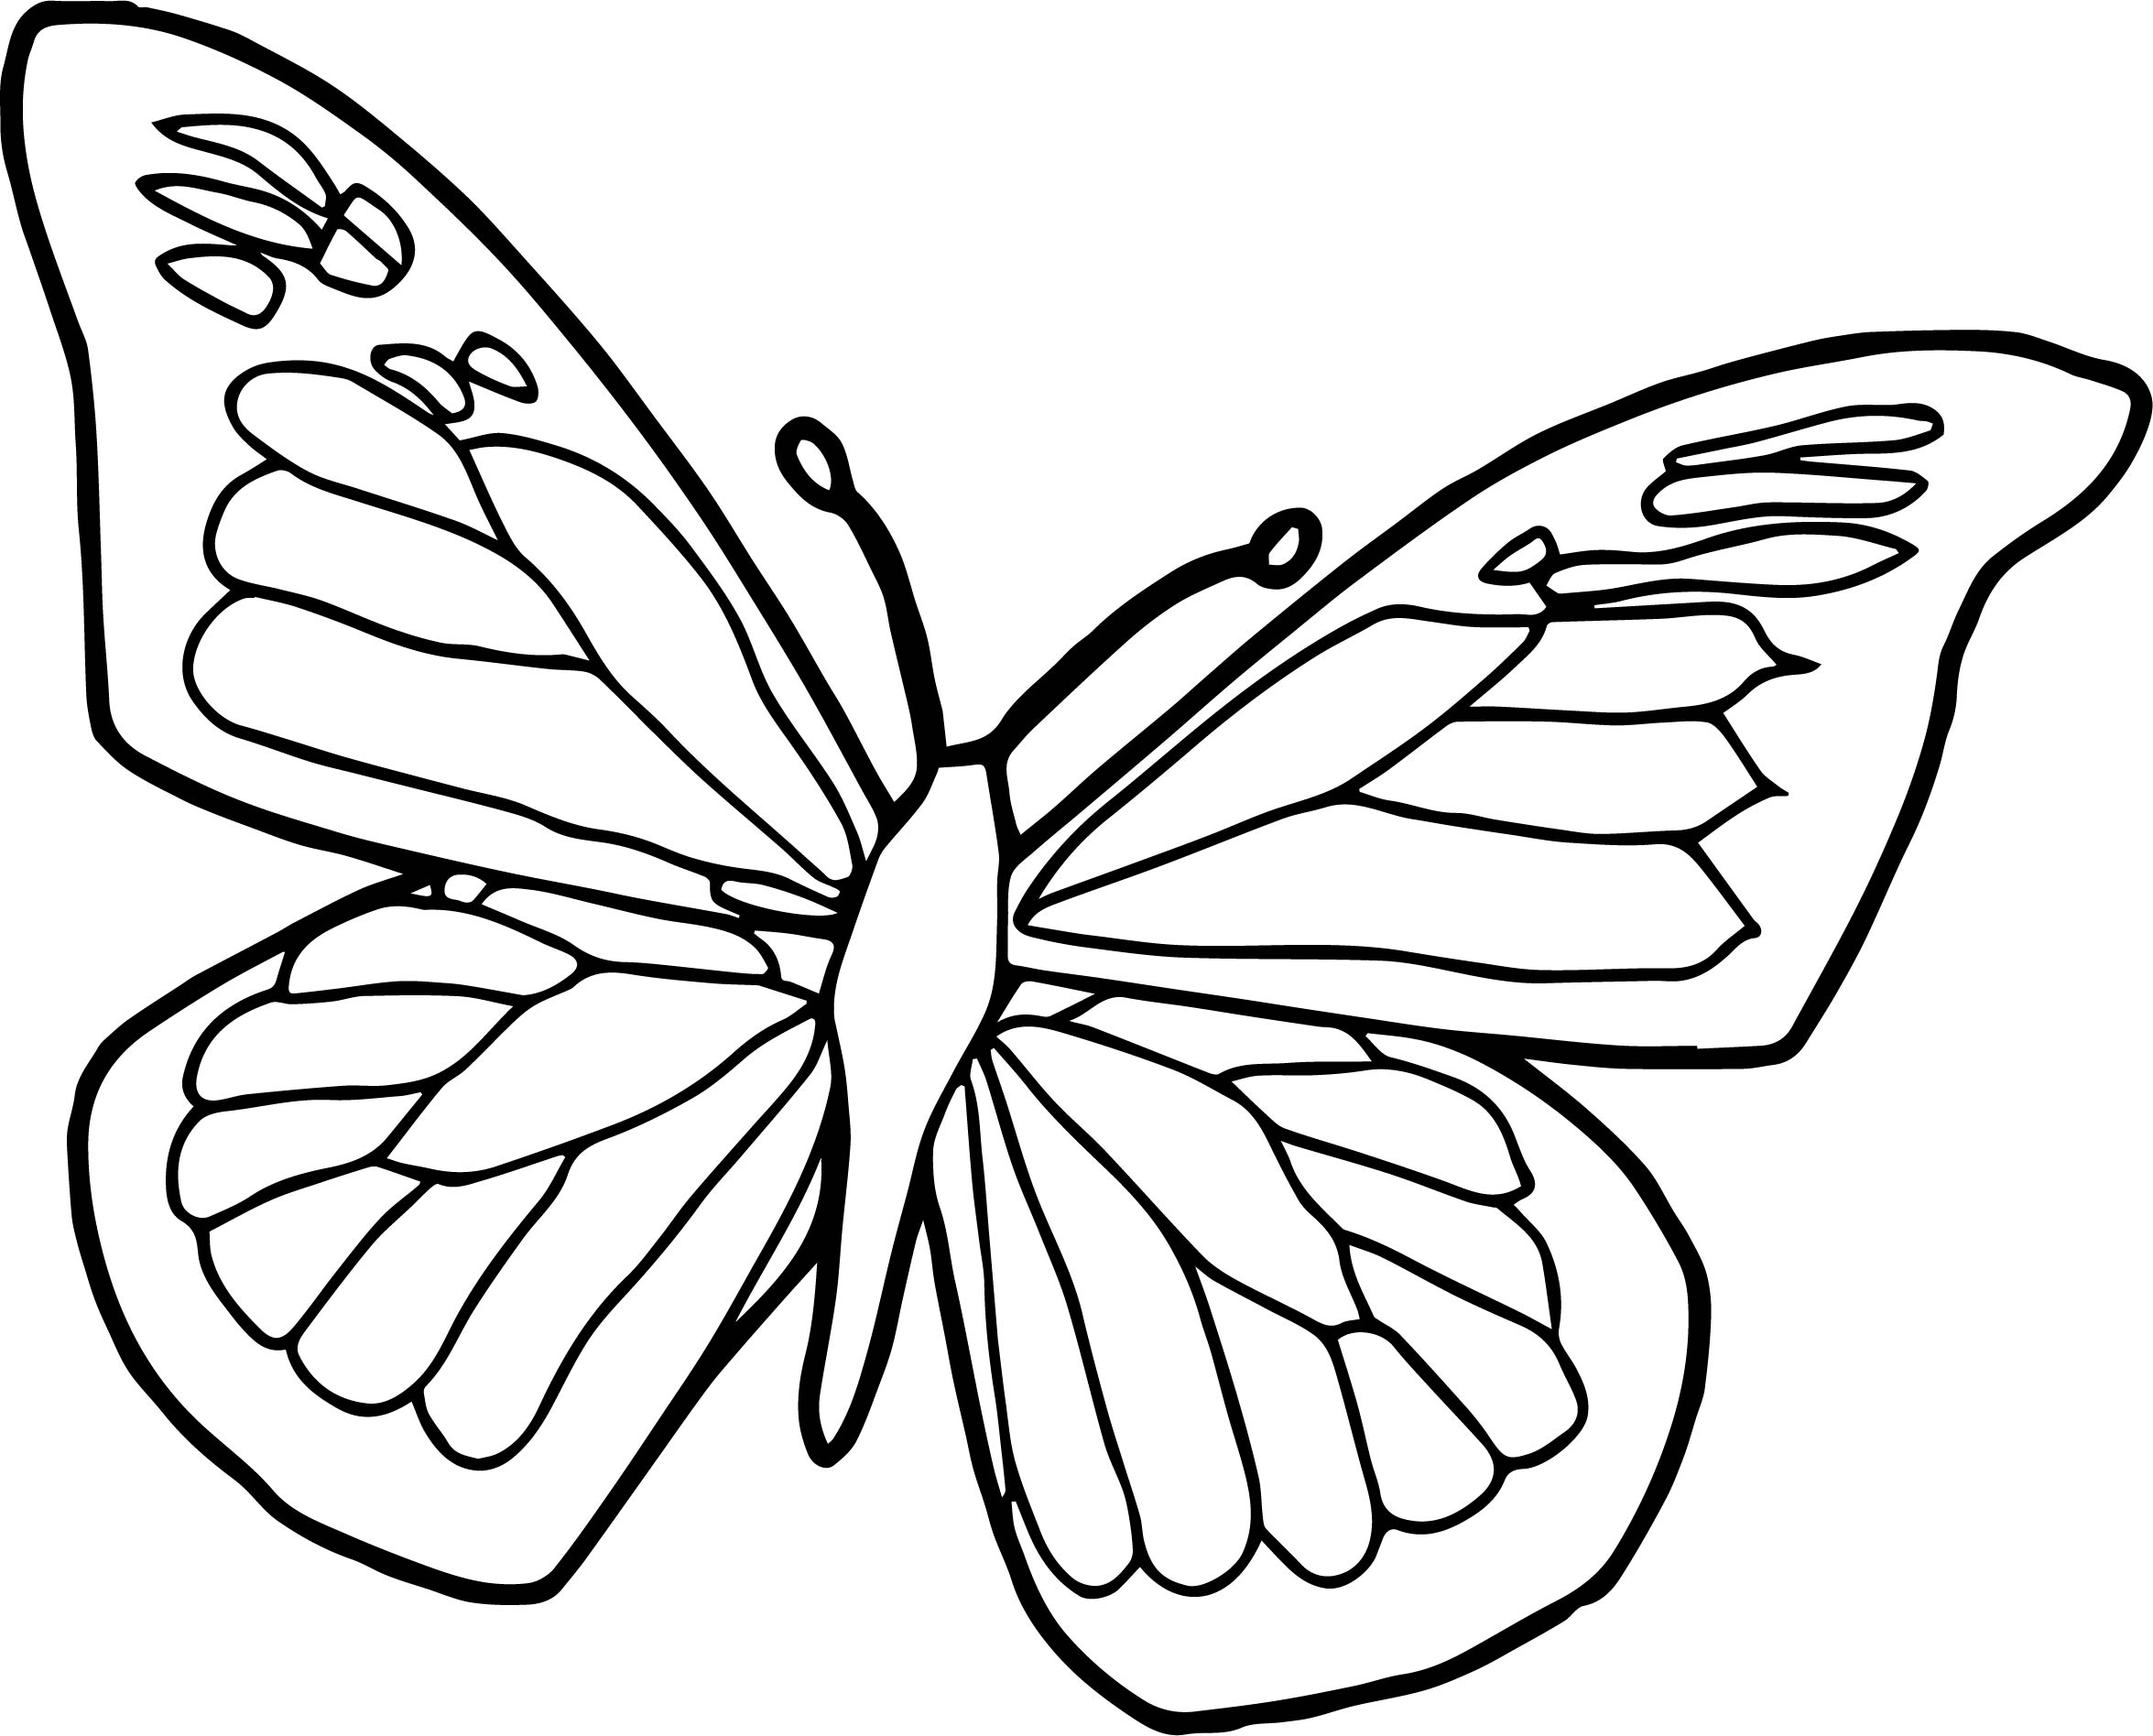 Blue Black Butterfly Coloring Page | Wecoloringpage